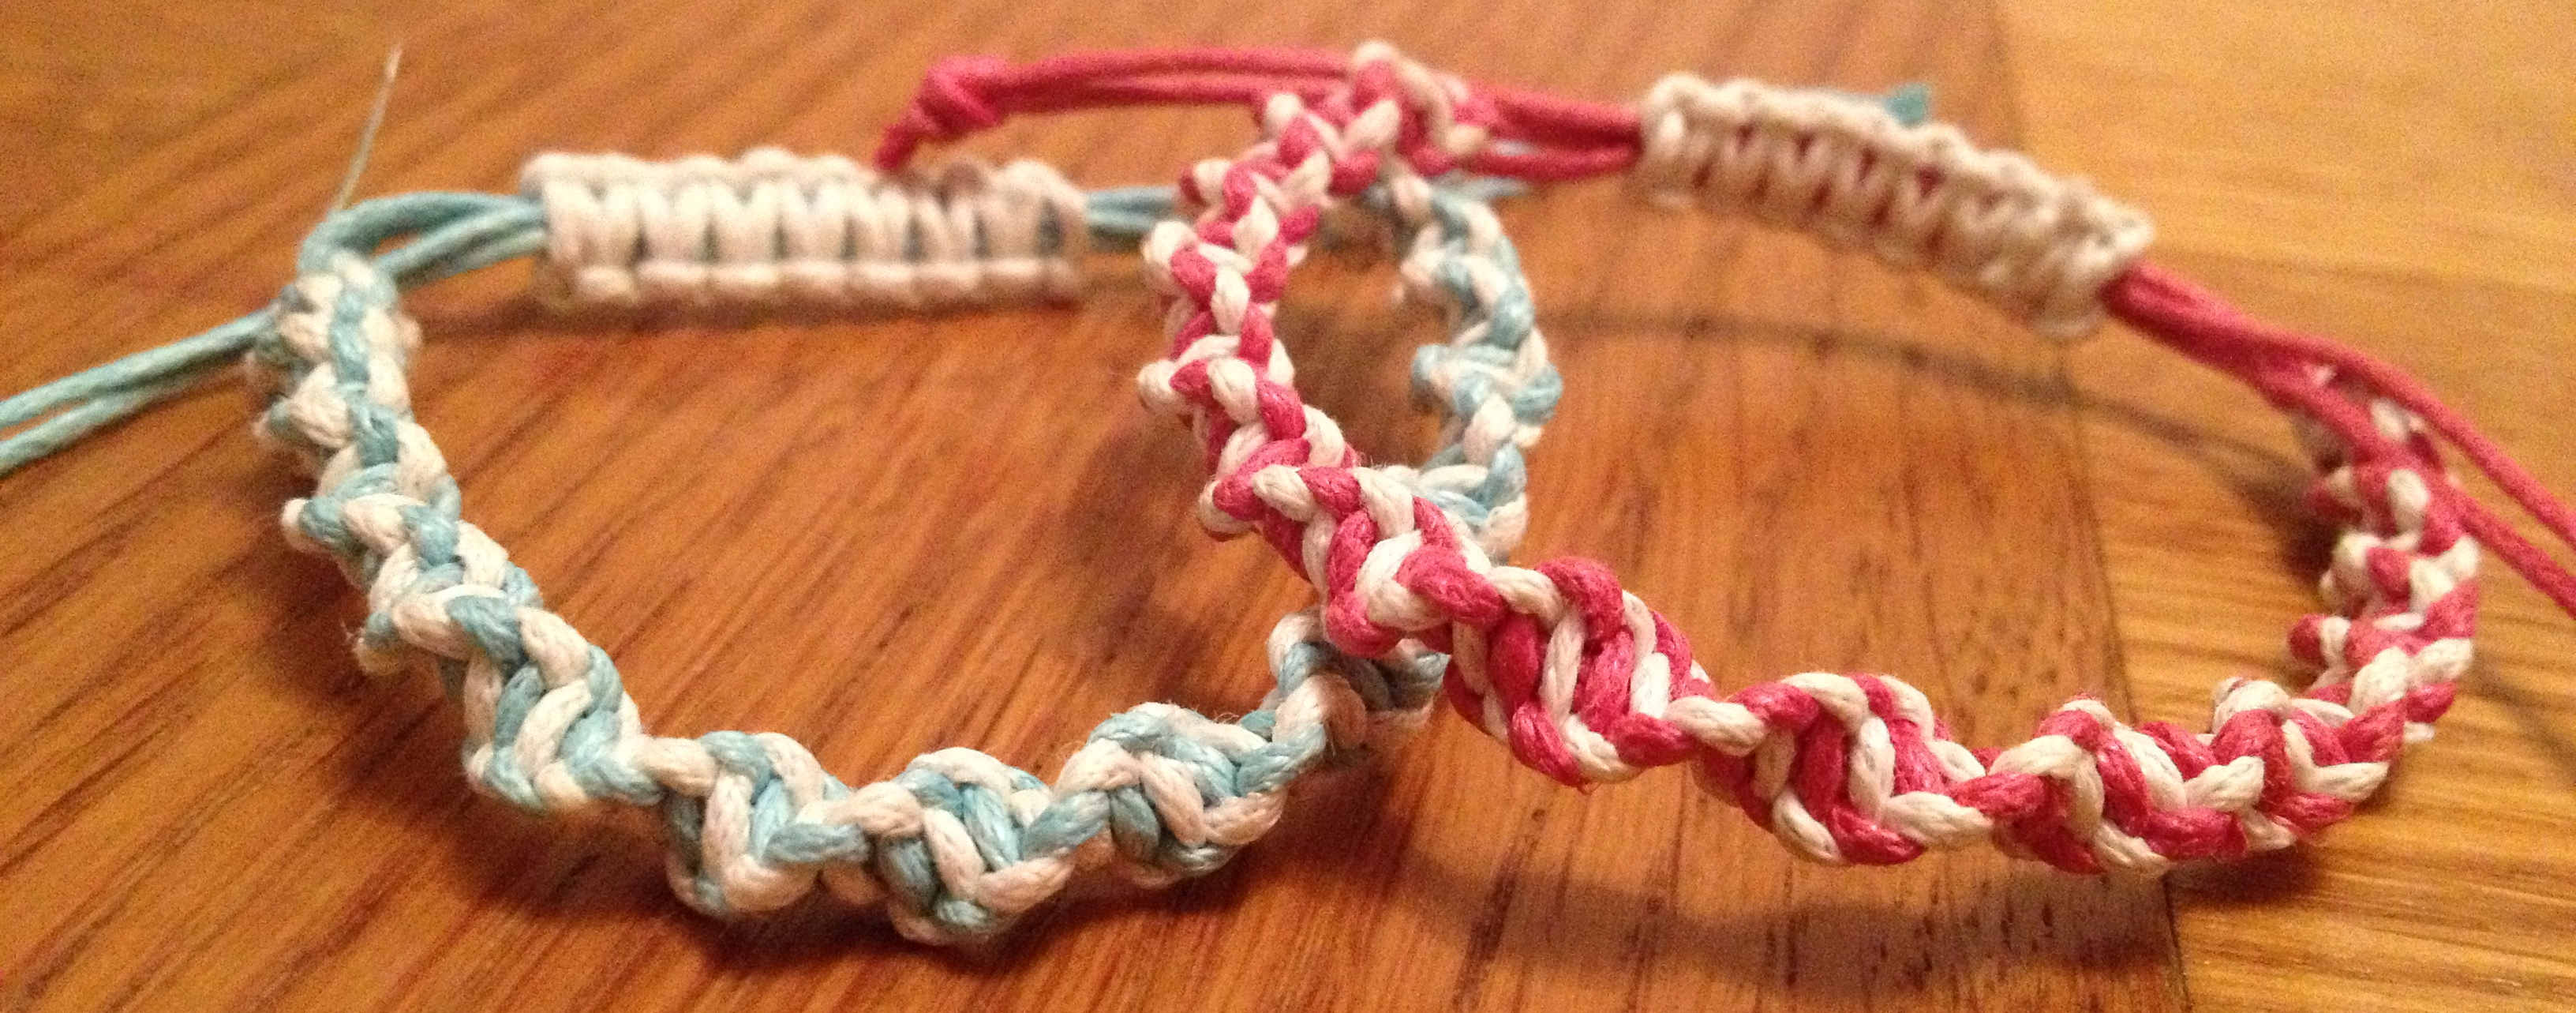 Personalized macrame bracelets heart handmade blog for Handmade craft ideas to sell